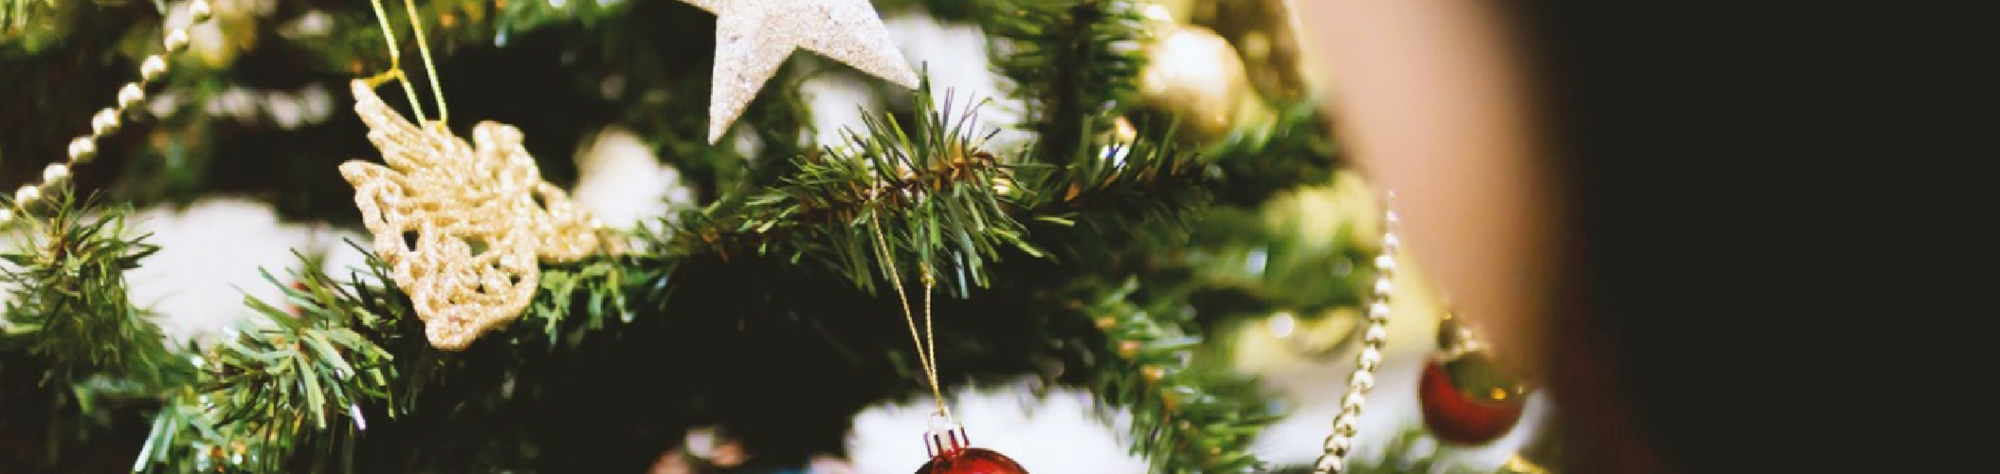 Top 3 Tips for Homeschooling through the Holidays!